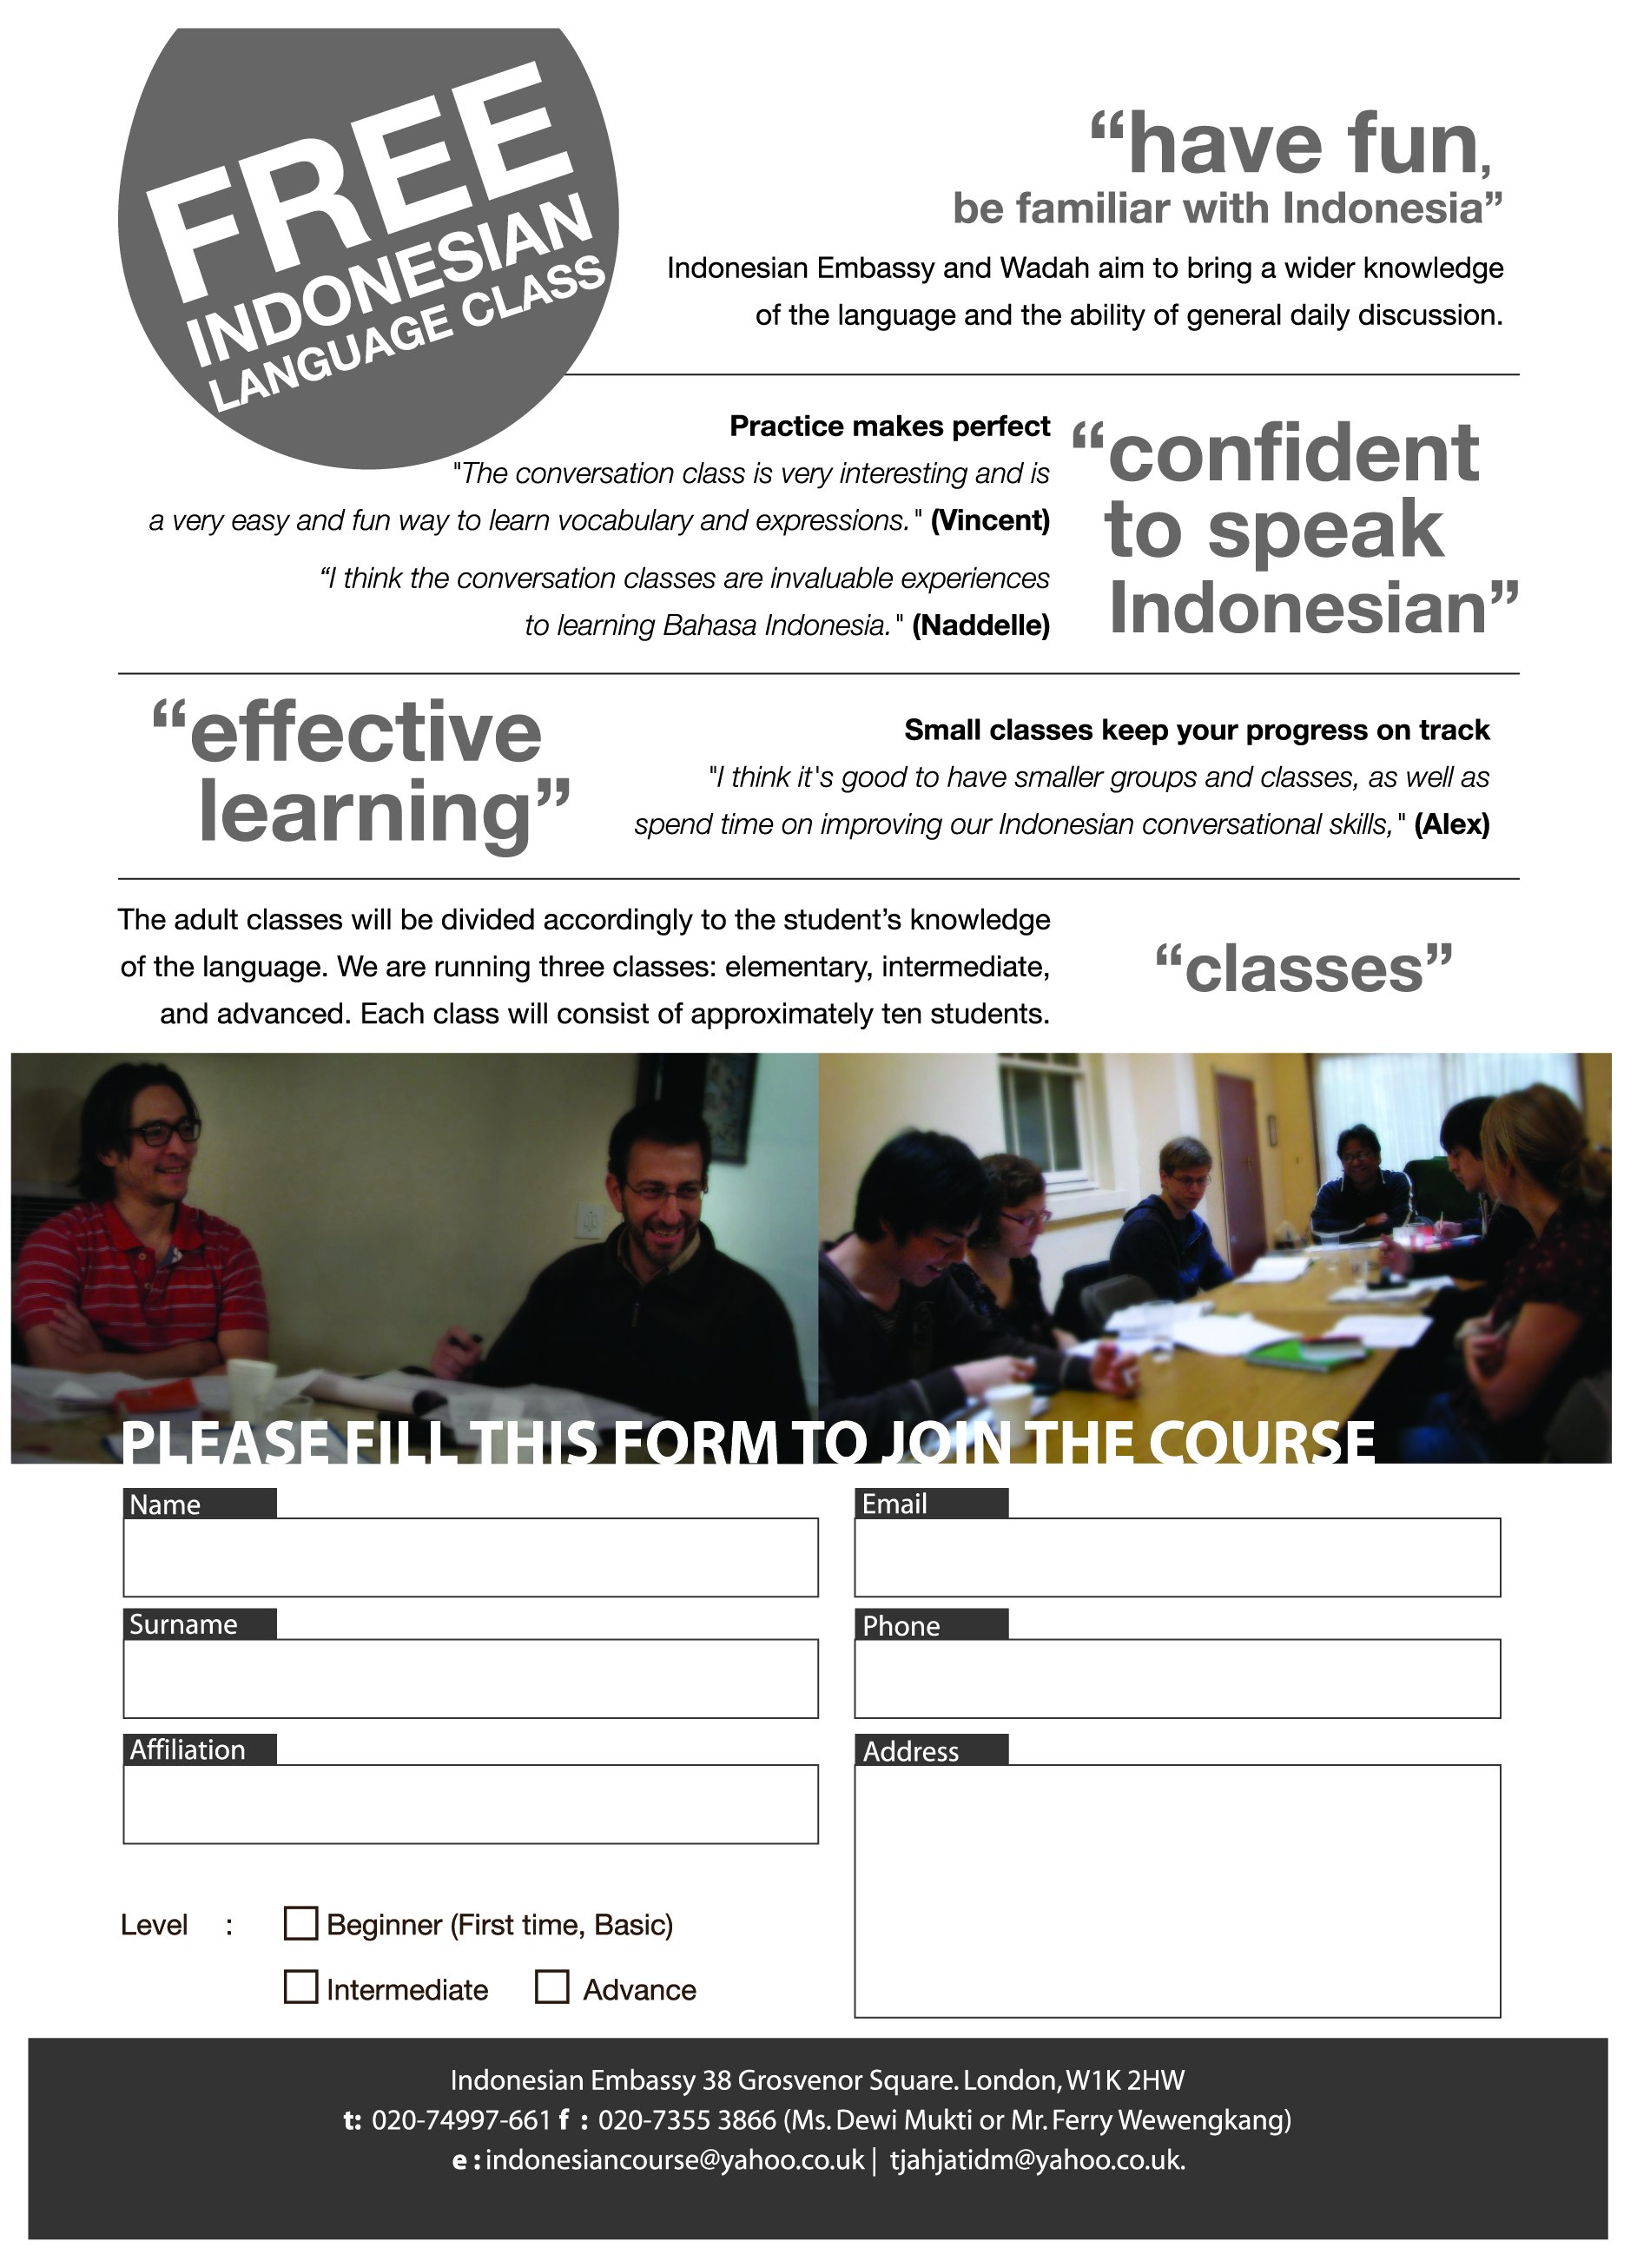 Free Indonesian Language Class | Indonesian Education and Culture